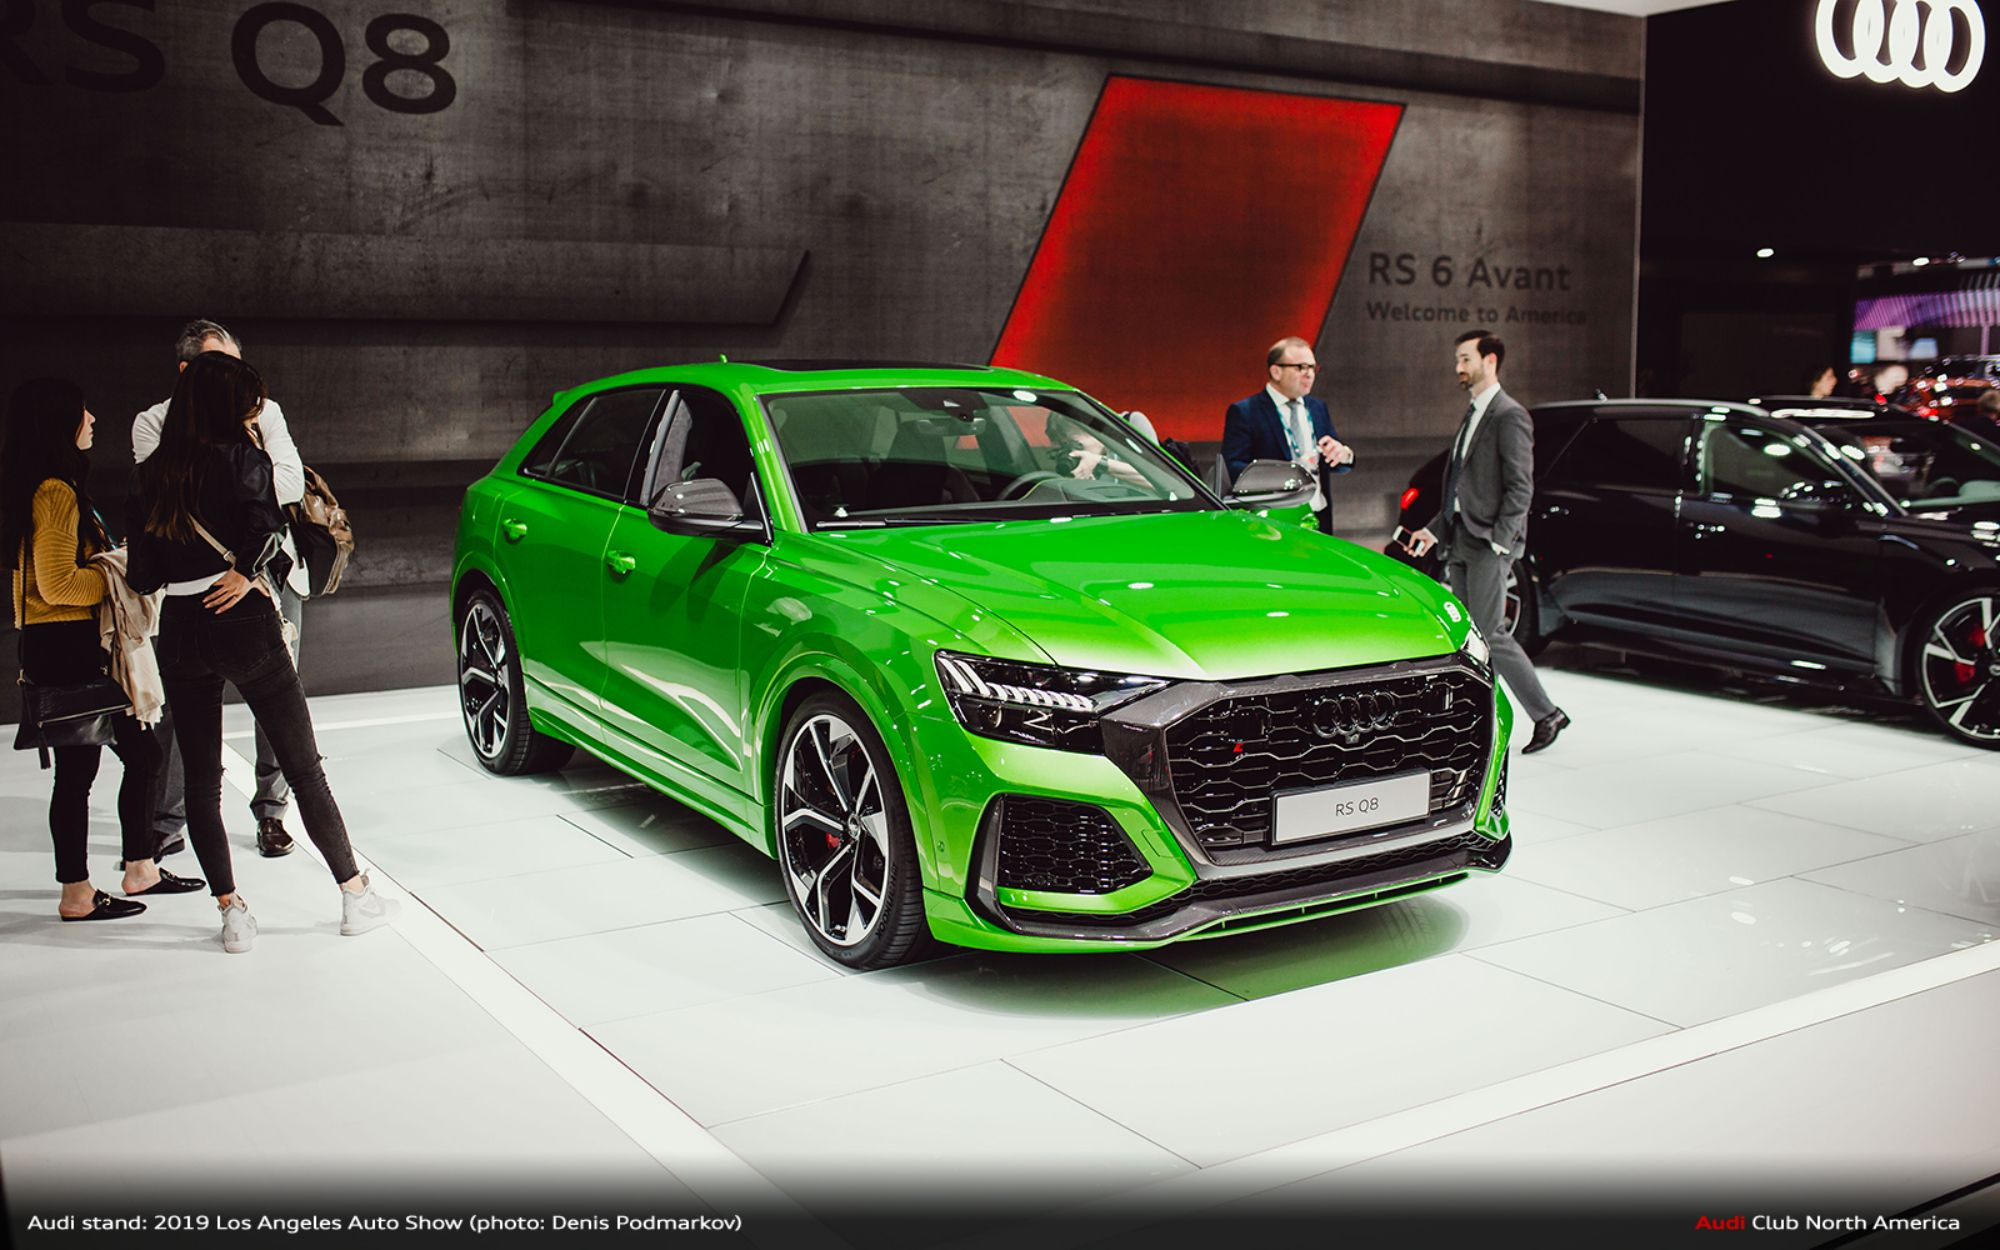 Event: Los Angeles Auto Show 2019